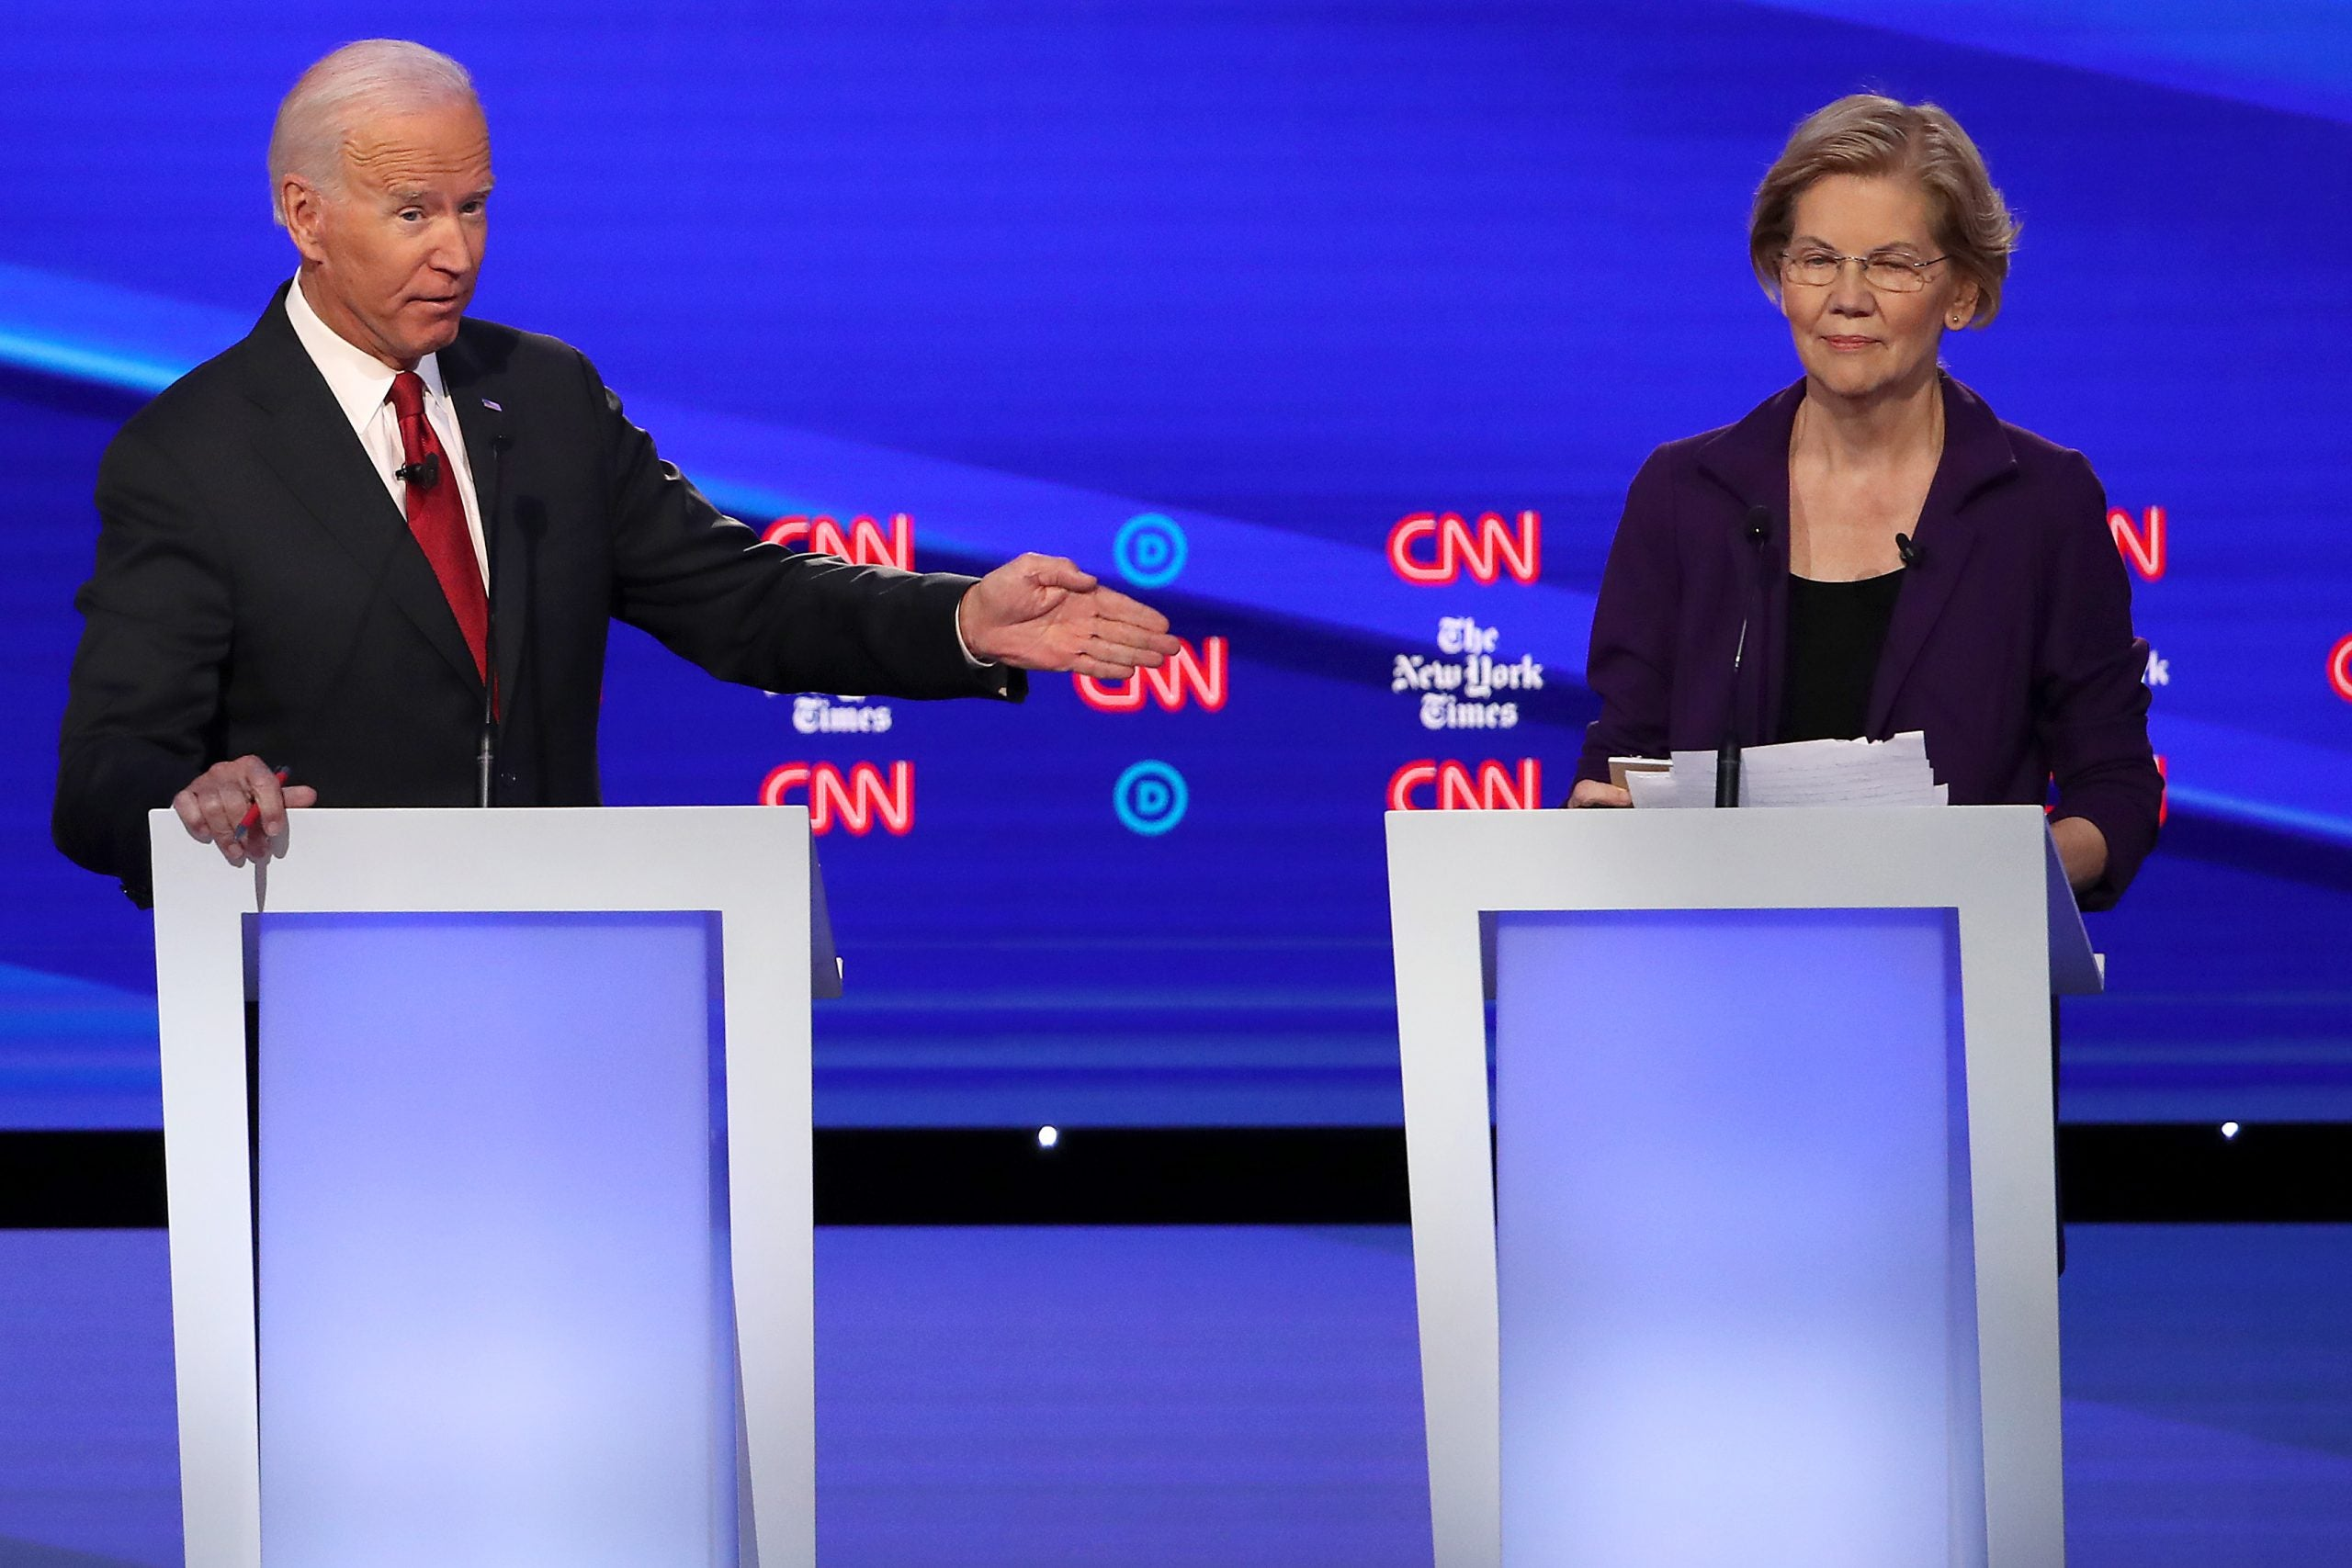 Swipes from rivals during the Democratic debate only prove Warren is now the frontrunner